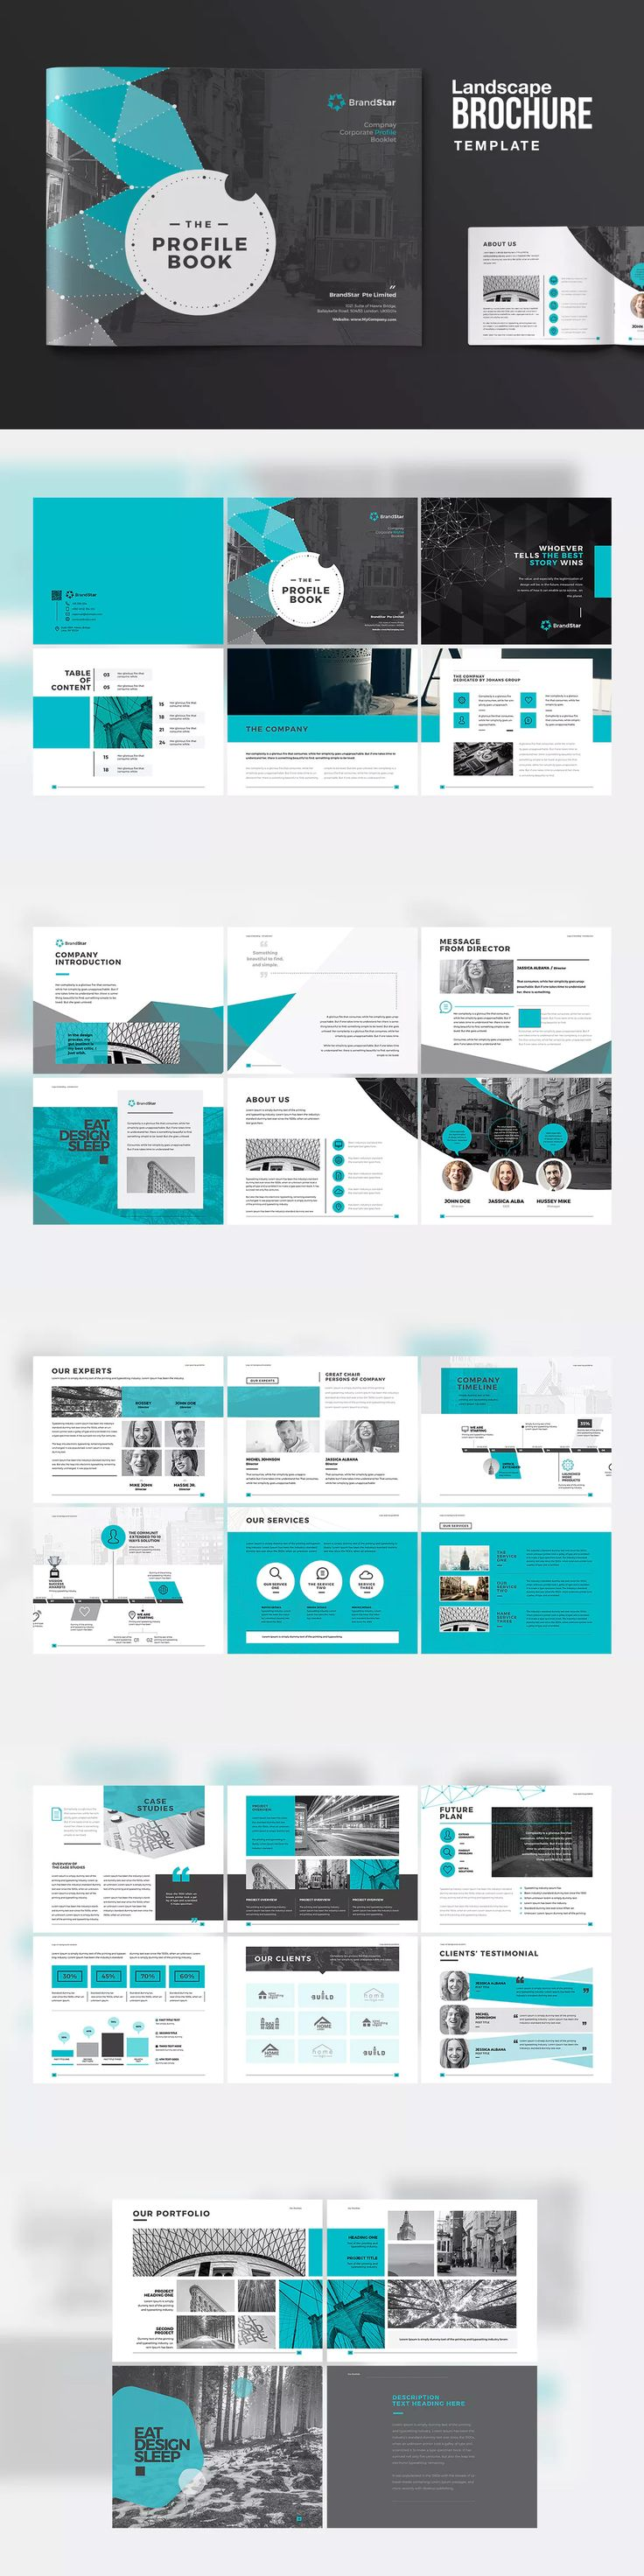 Best Company Profile Brochure Templates Images On Pinterest - Company profile brochure template